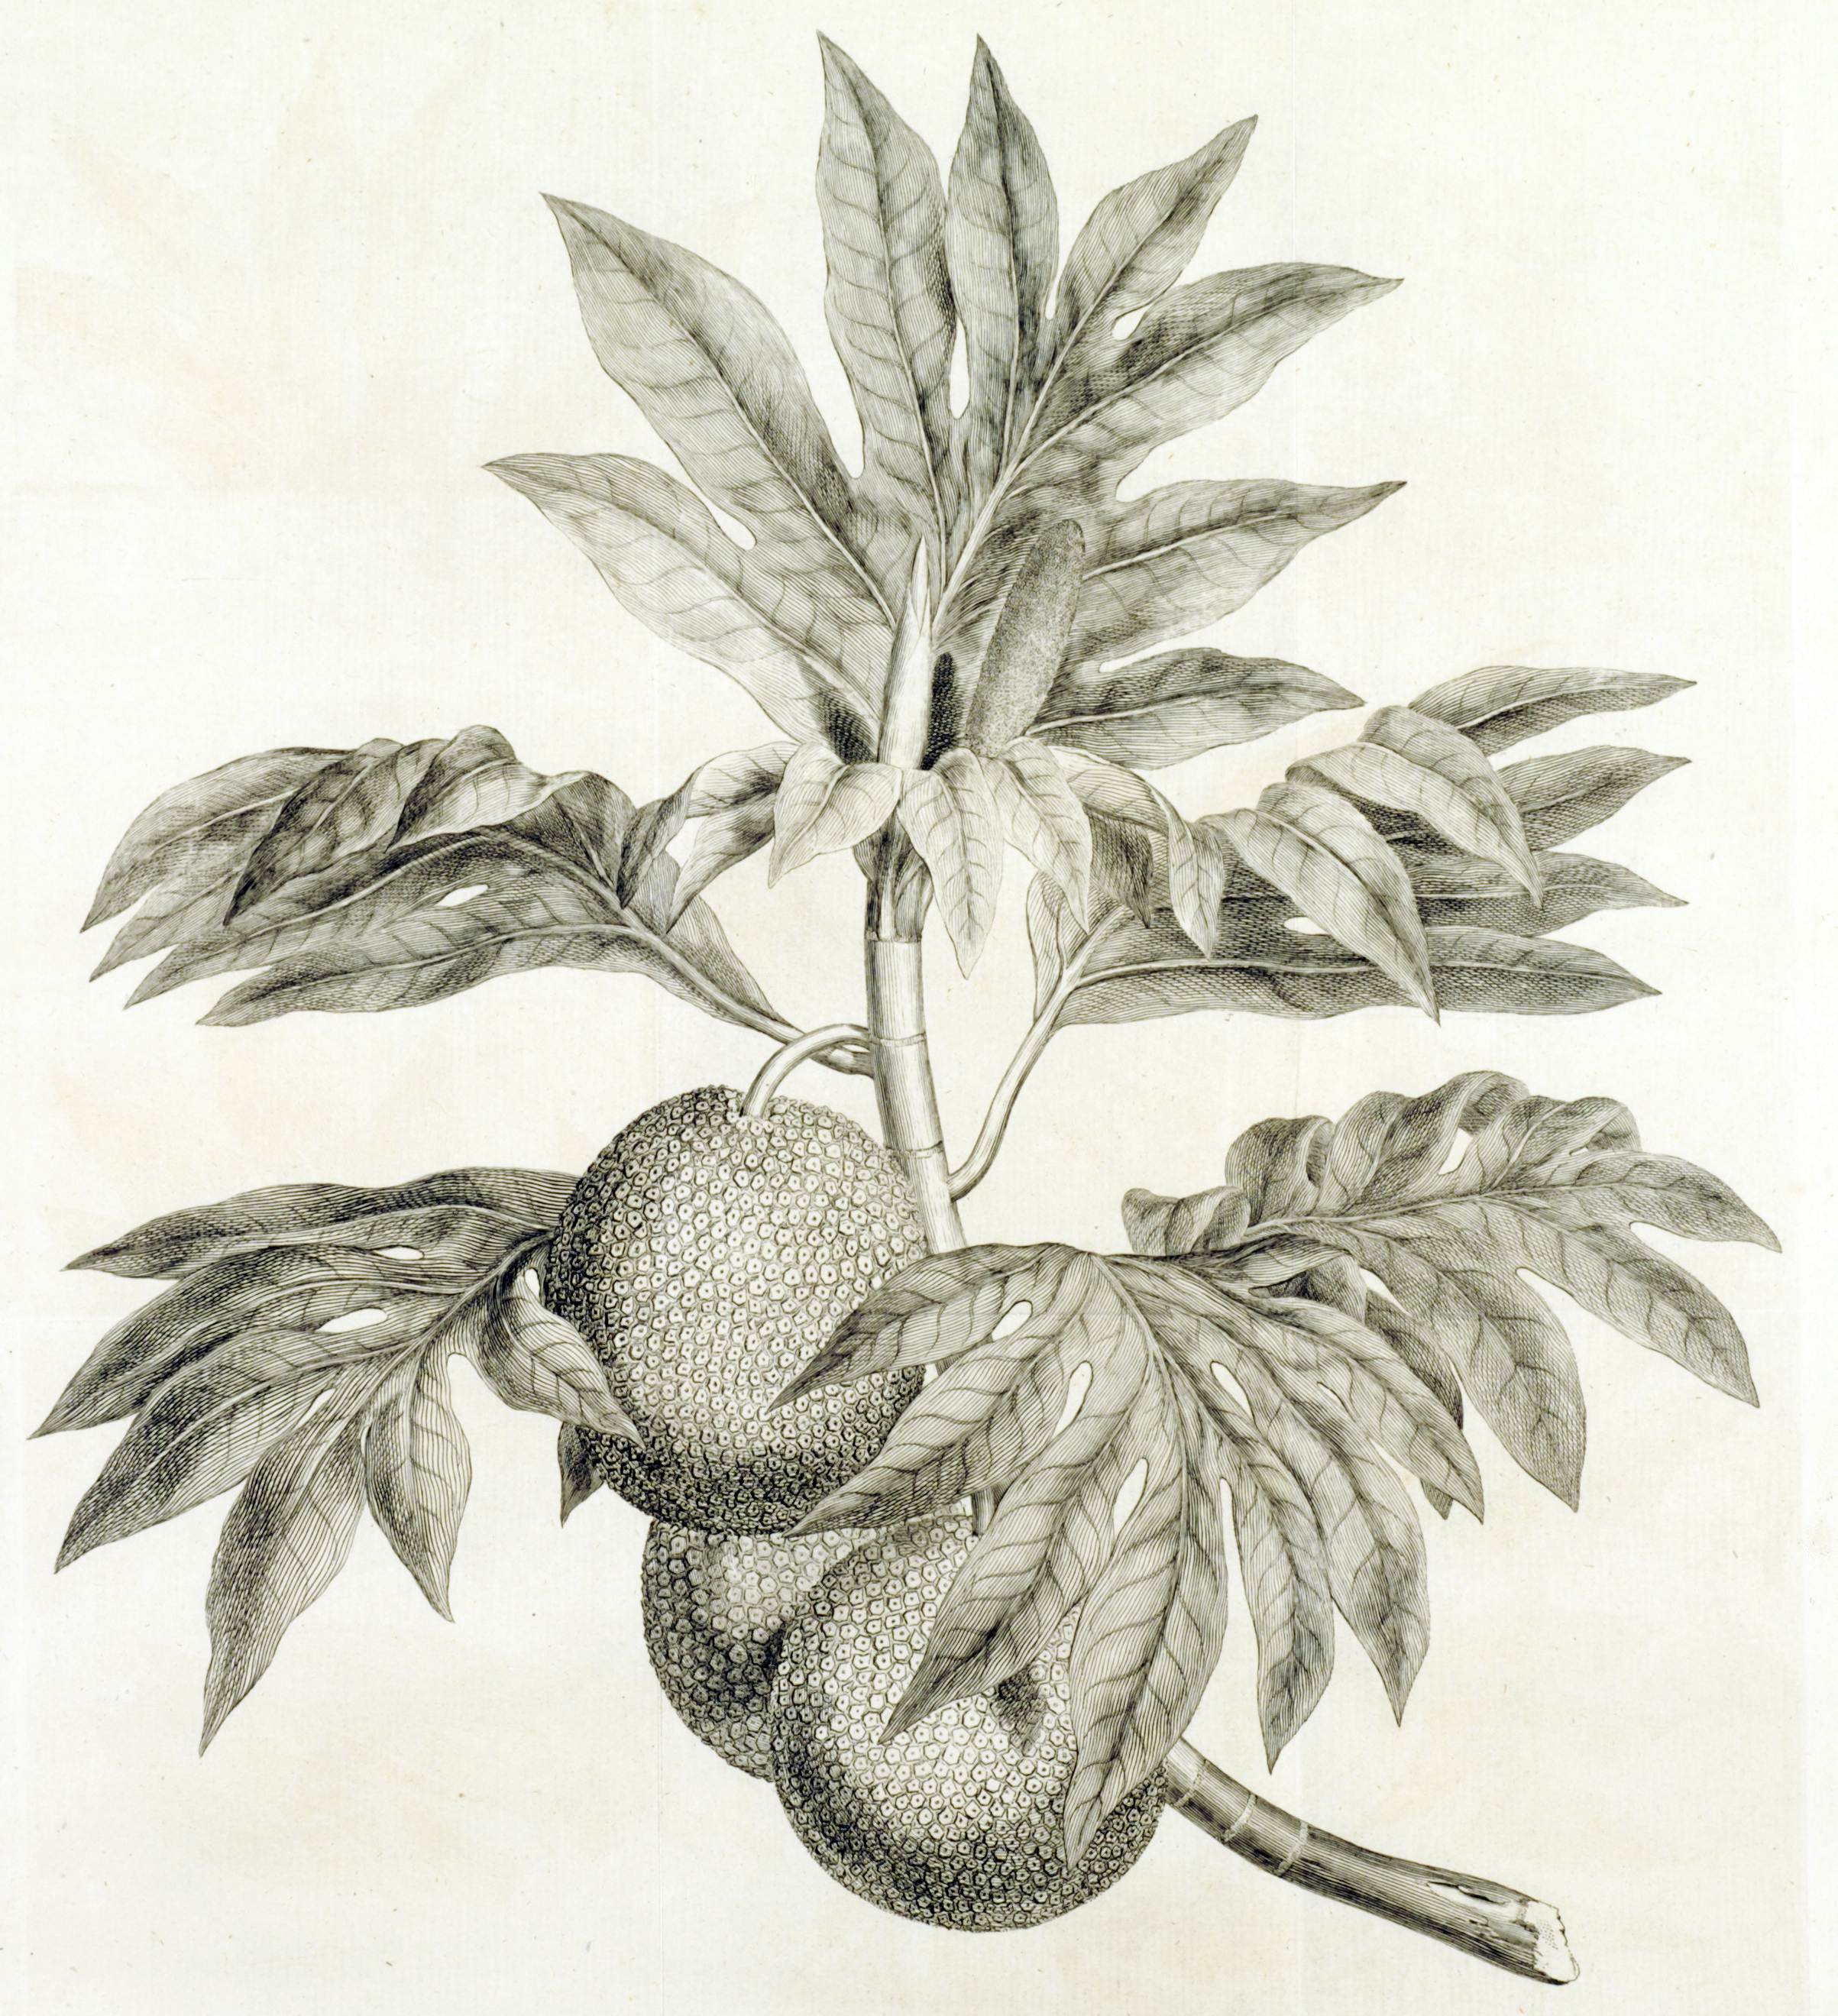 Breadfruit, engraving from Hawkesworth, vol. 2, plate 3, probably after a drawing by Sydney Parkinson, n.d. (ca. 1785).